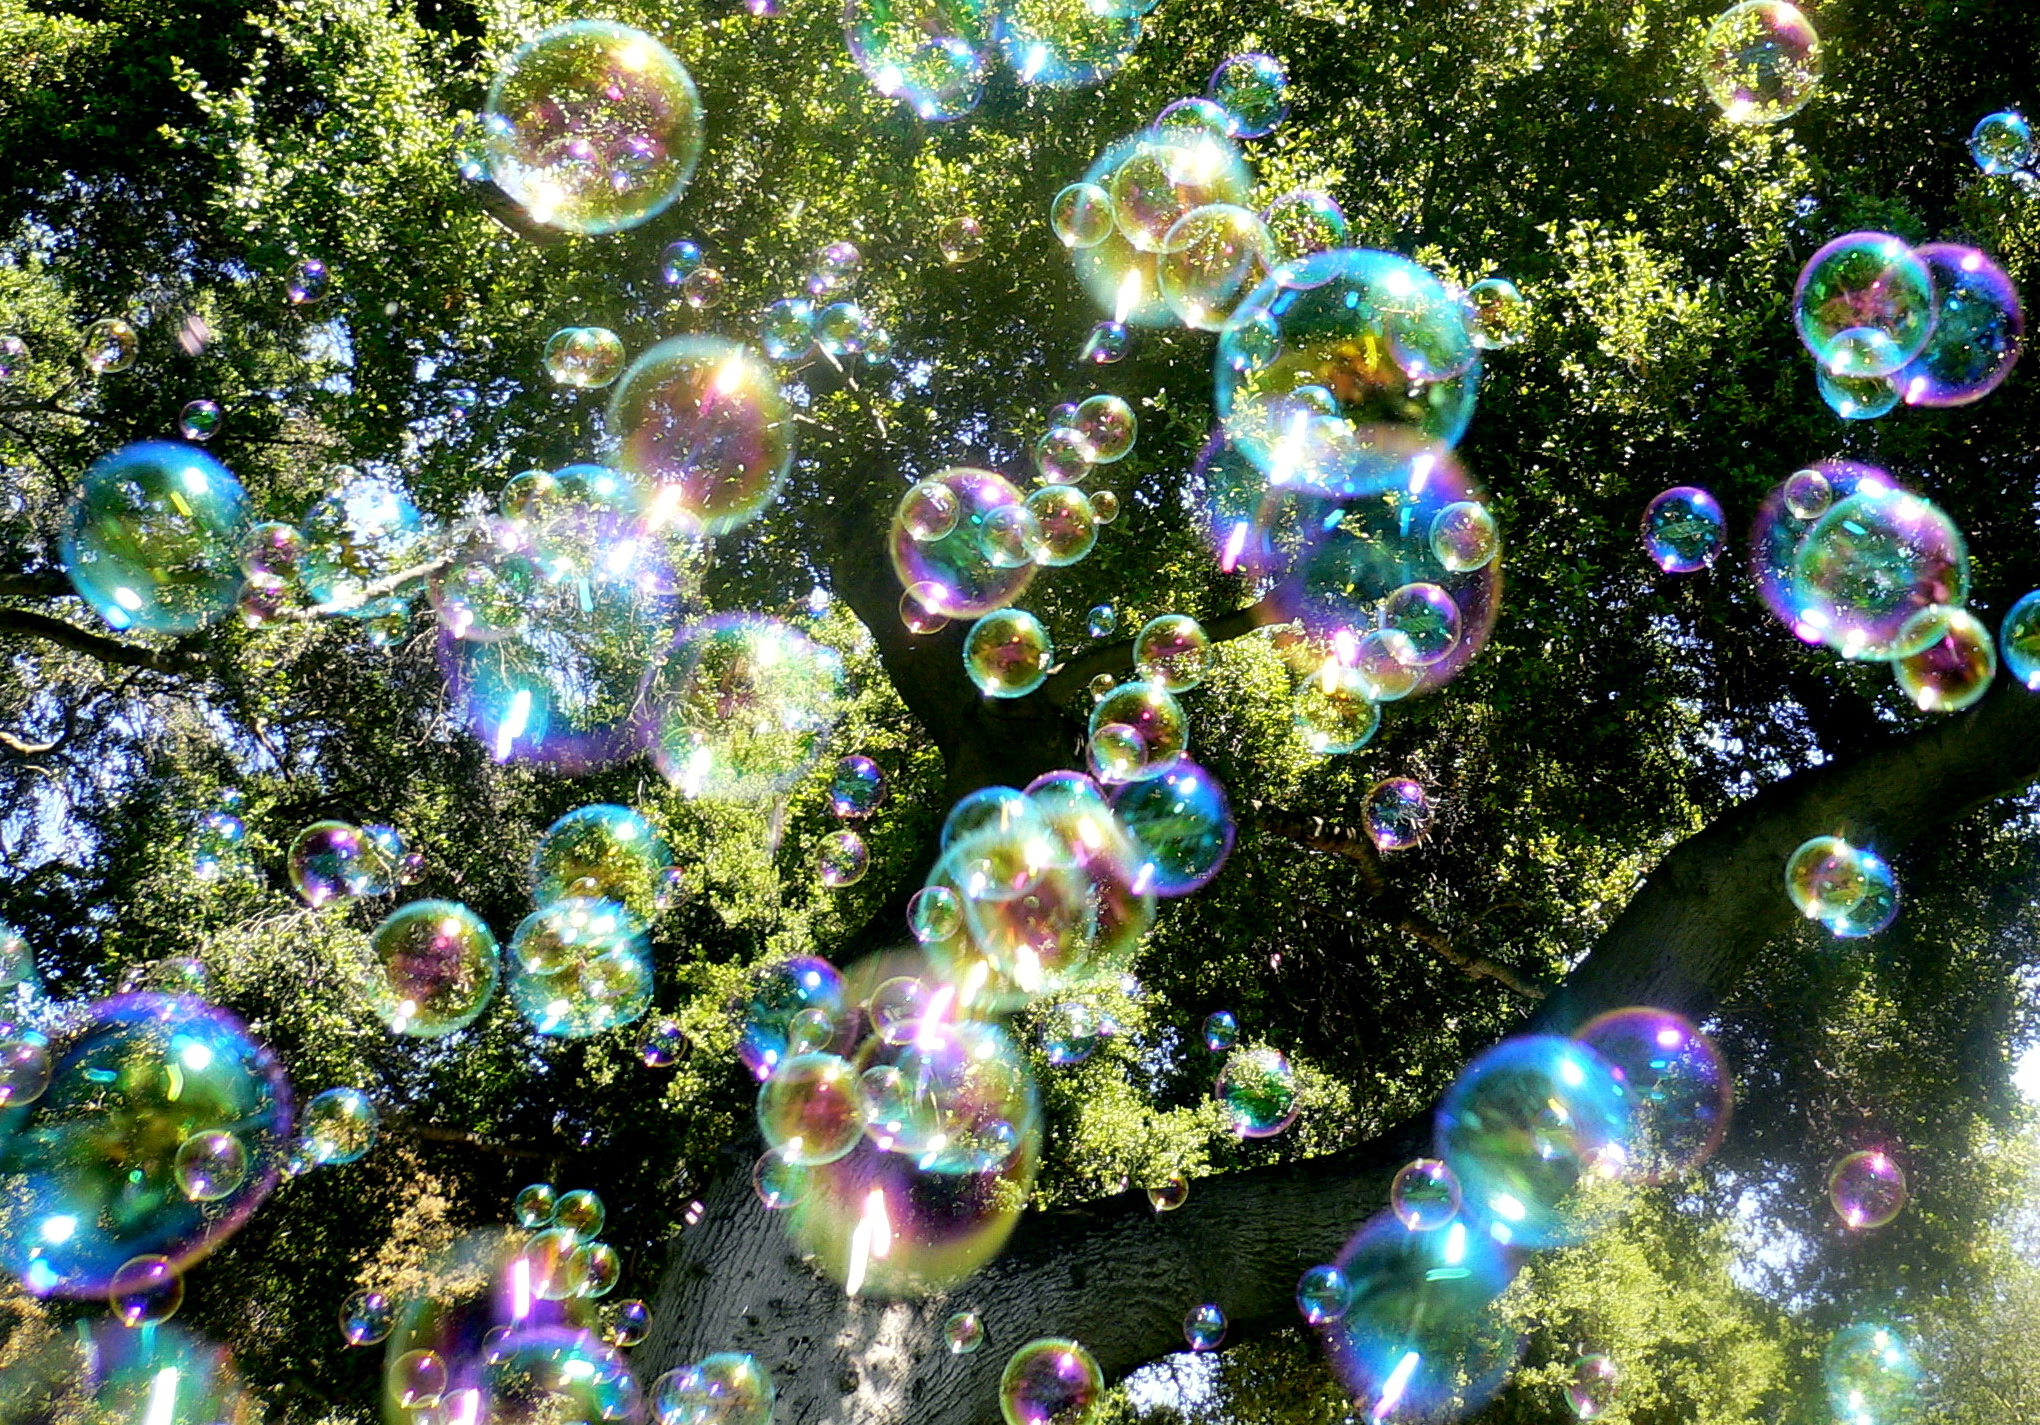 Bubbles in the sunlight